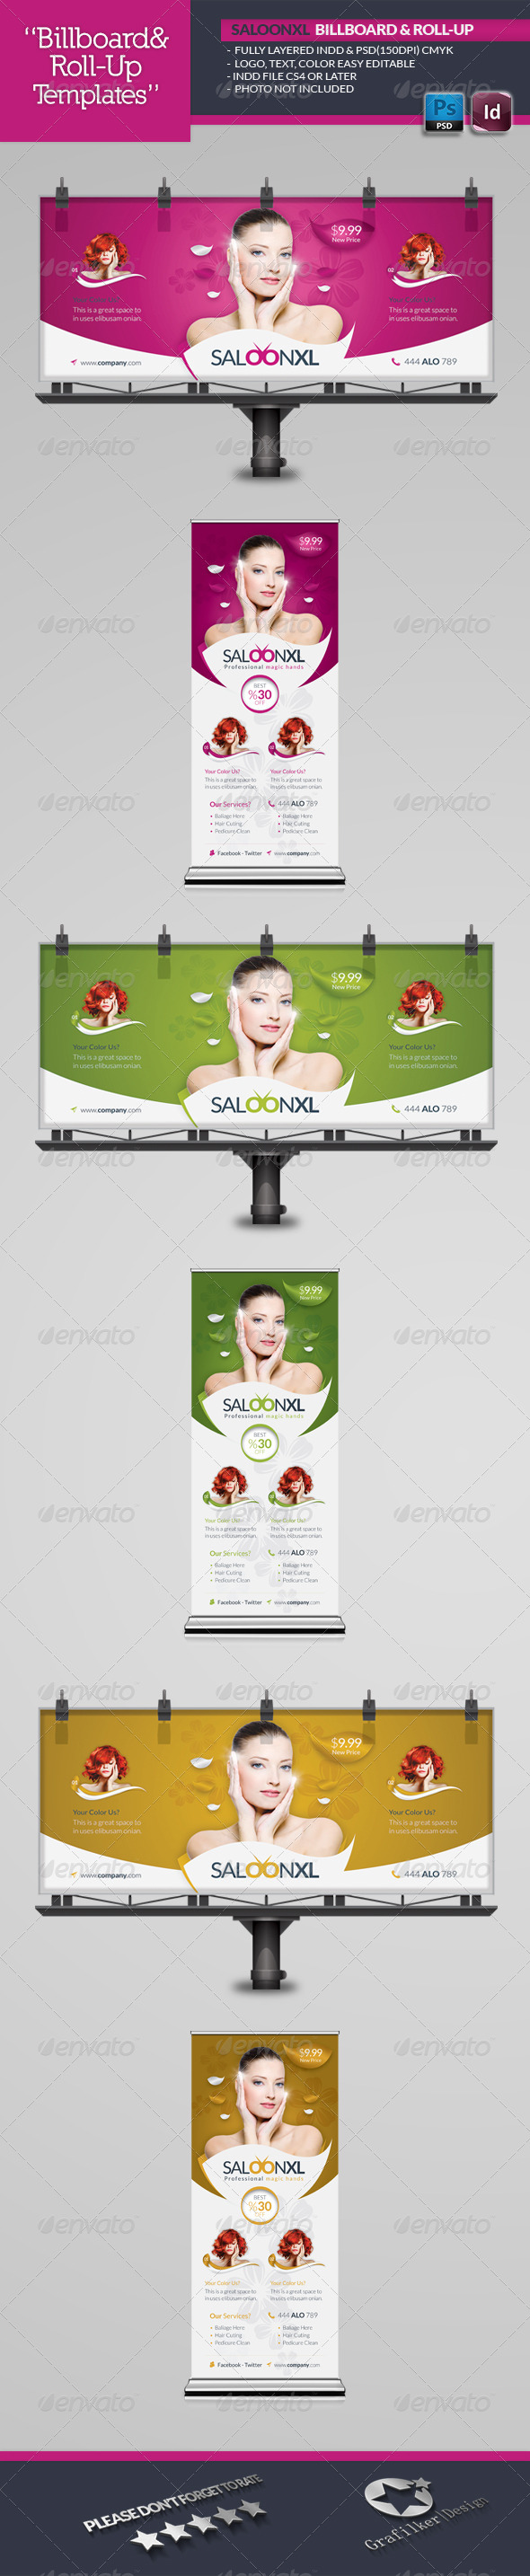 Beauty Saloon Billboard Roll-Up Template - Signage Print Templates